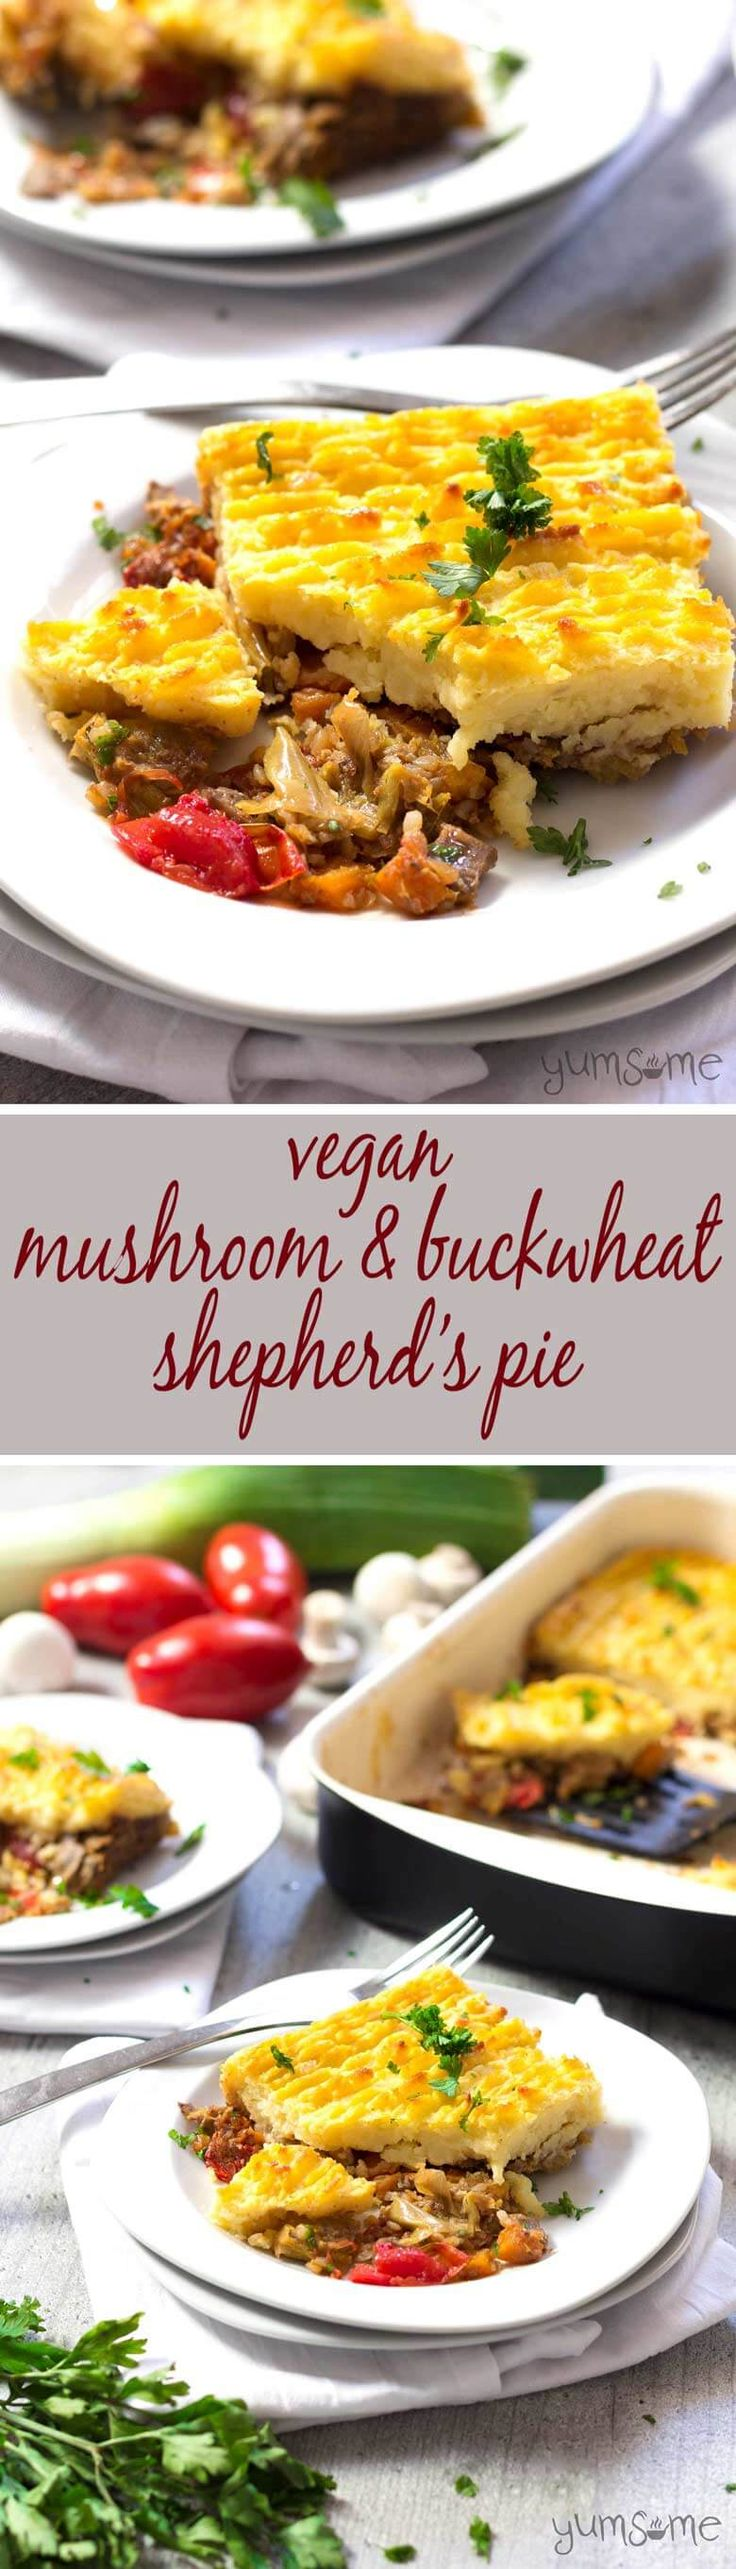 Hearty vegetables and nourishing buckwheat, topped with a layer of crisped creamy mashed potato, make my vegan mushroom and buckwheat shepherd's pie a deliciously comforting, filling, and very frugal autumn dish. It's so delicious, you won't miss the meat! | yumsome.com